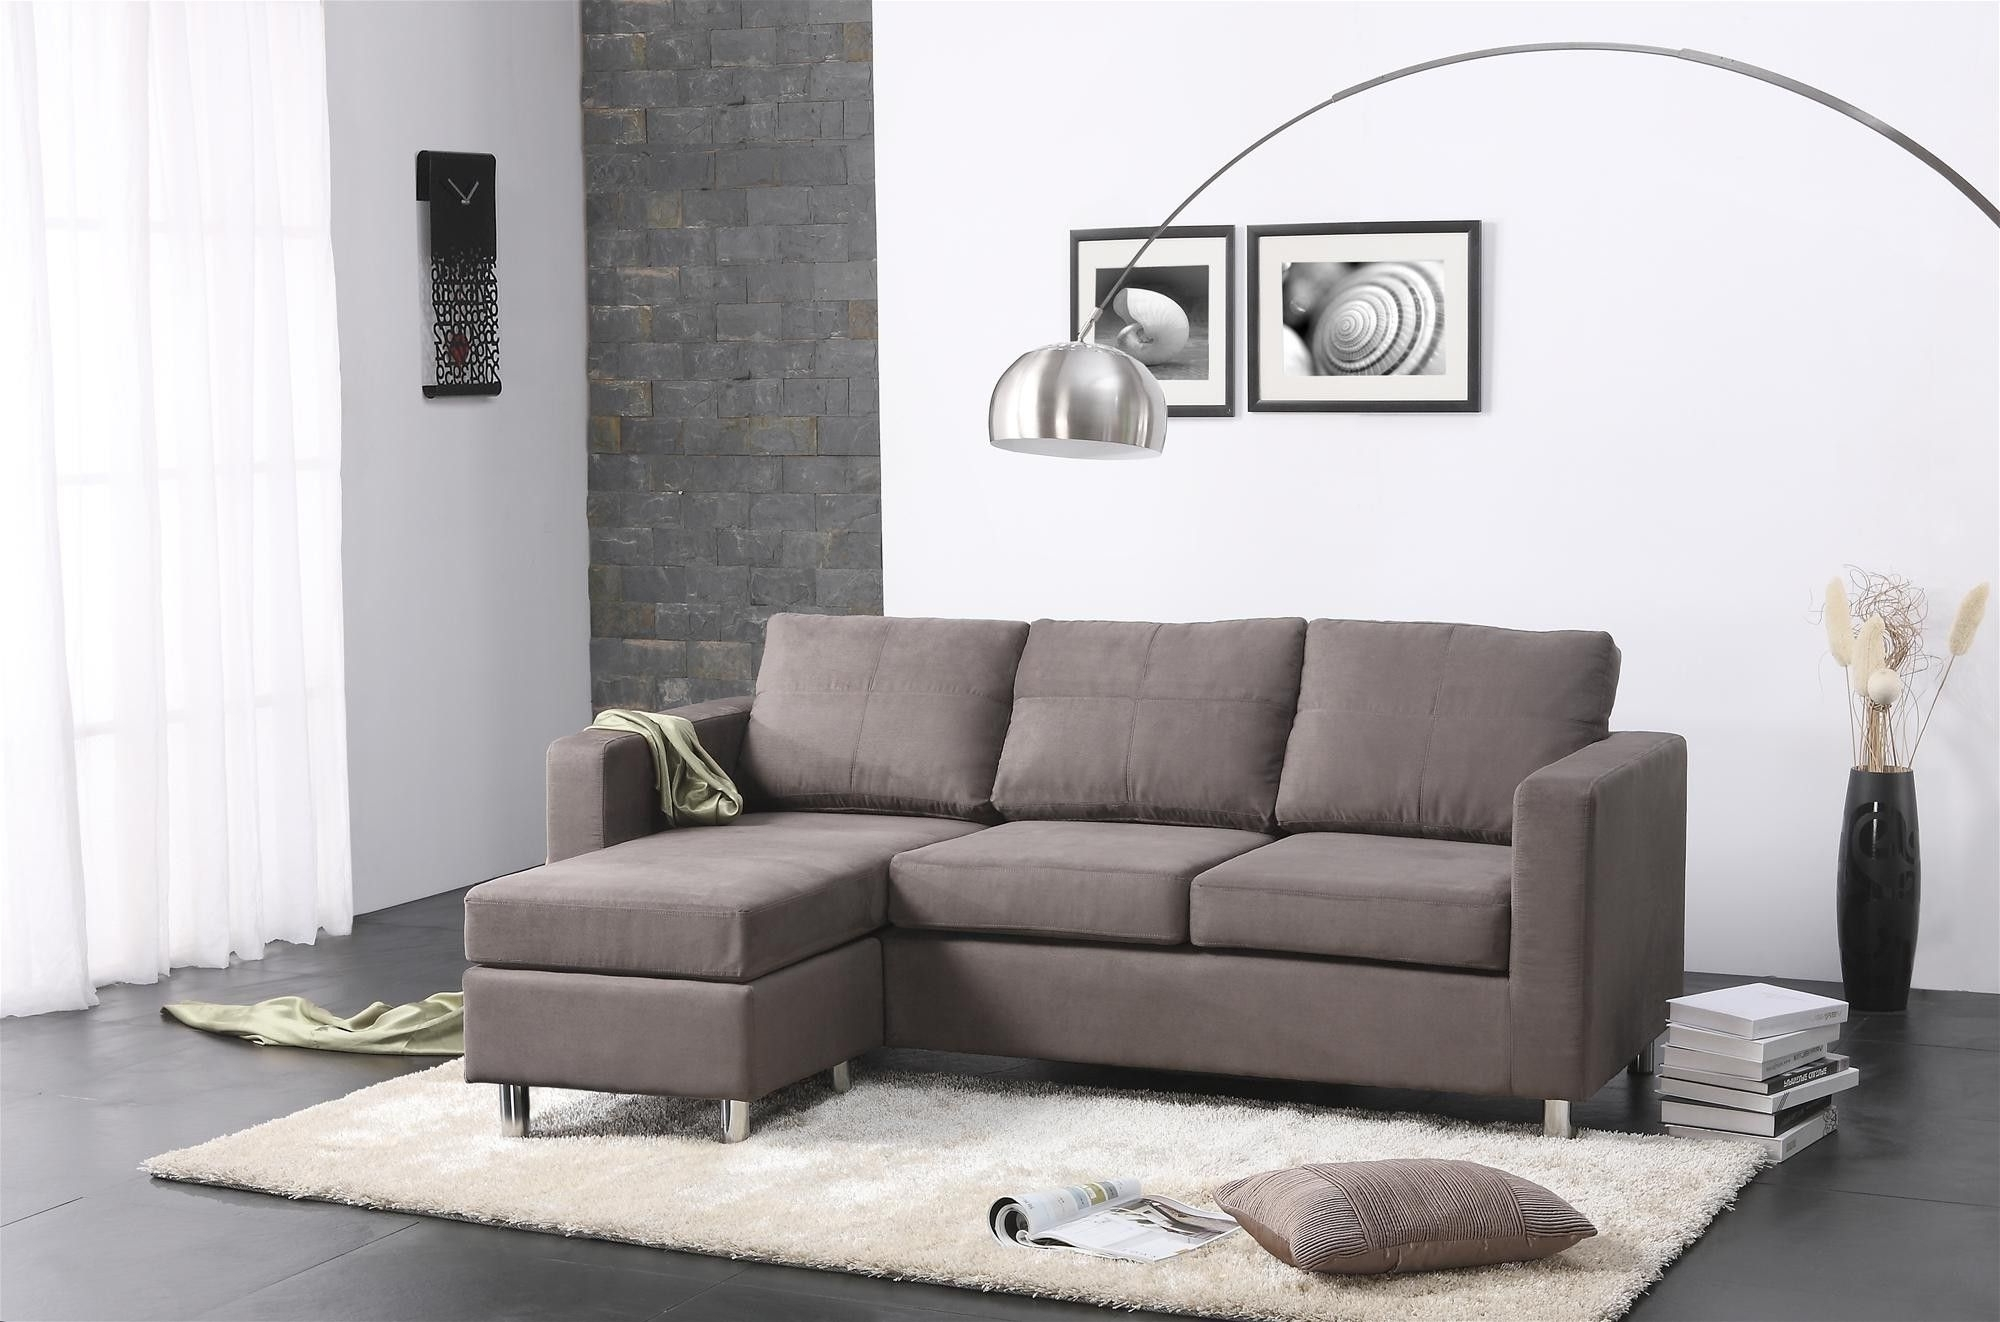 Modern Sectional Sofas For Small Spaces With Well Known Amazing Modern Small Spaces Living Room Decors With Grey Sectional (View 12 of 15)